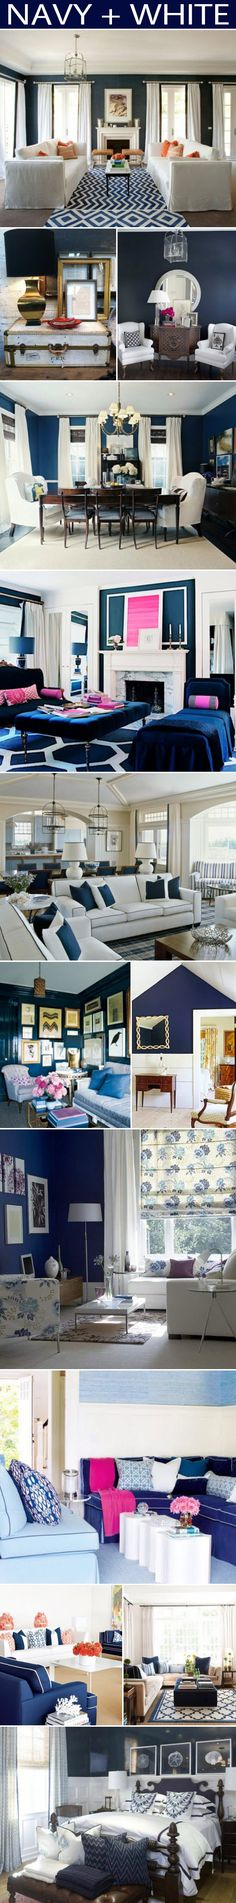 navy and white....thinking this is a little more dramatic than the lighter blue and white palette. I like it.